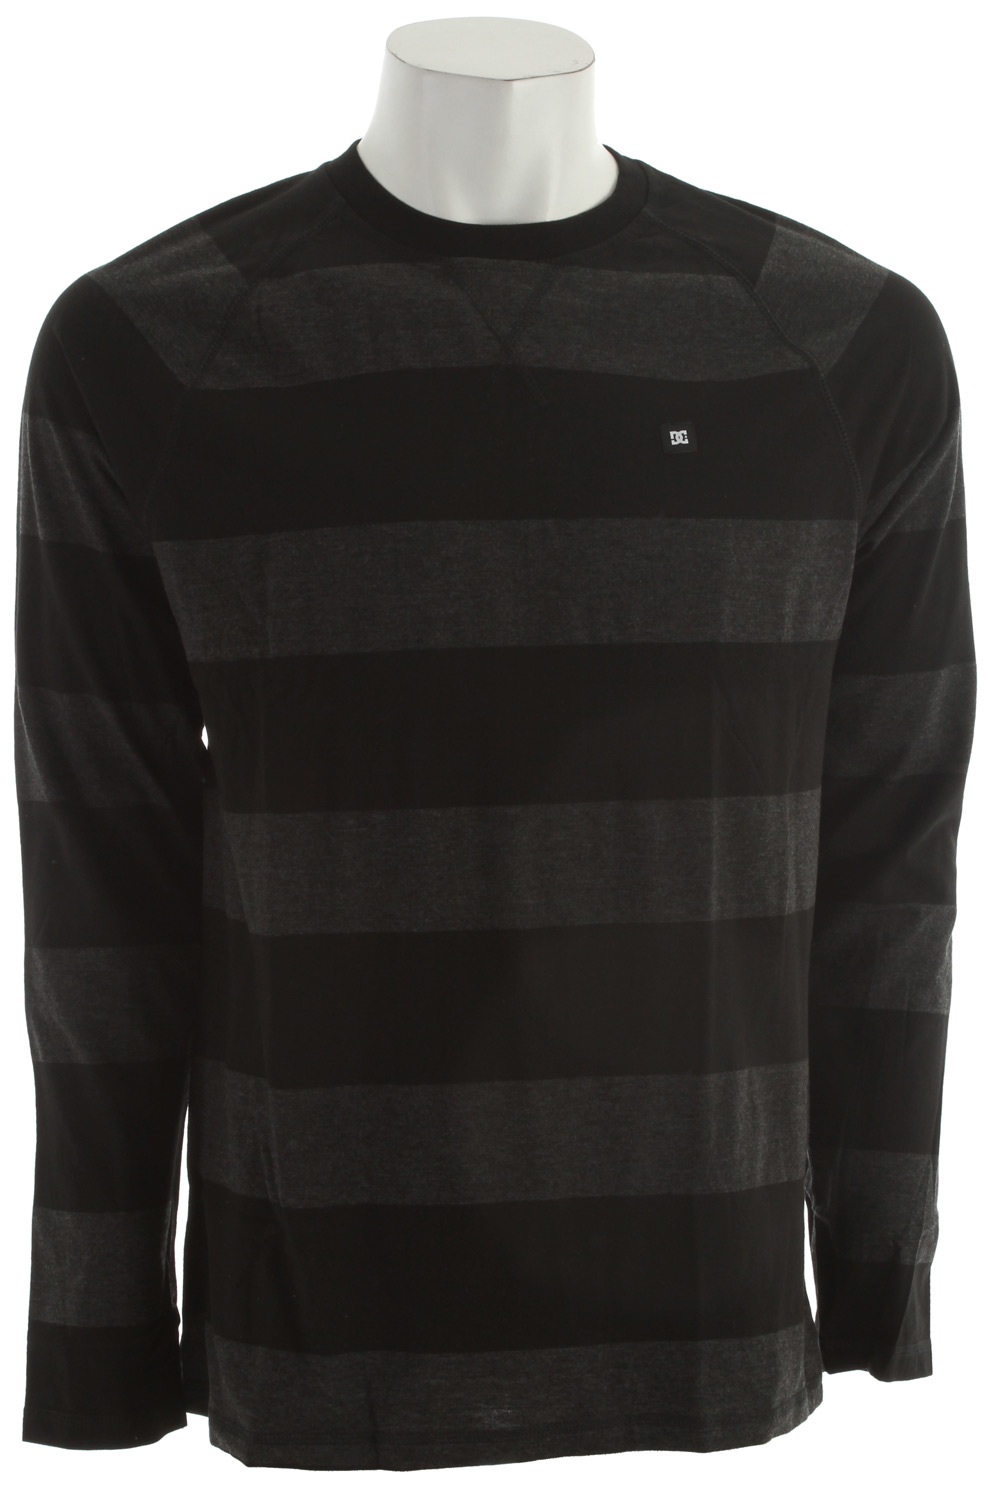 Skateboard Overdye L/S Striped Crew. Raglan Sleeves. Jersey Neck Taping. 82% Cotton, 18% Polyester Jersey. - $28.95